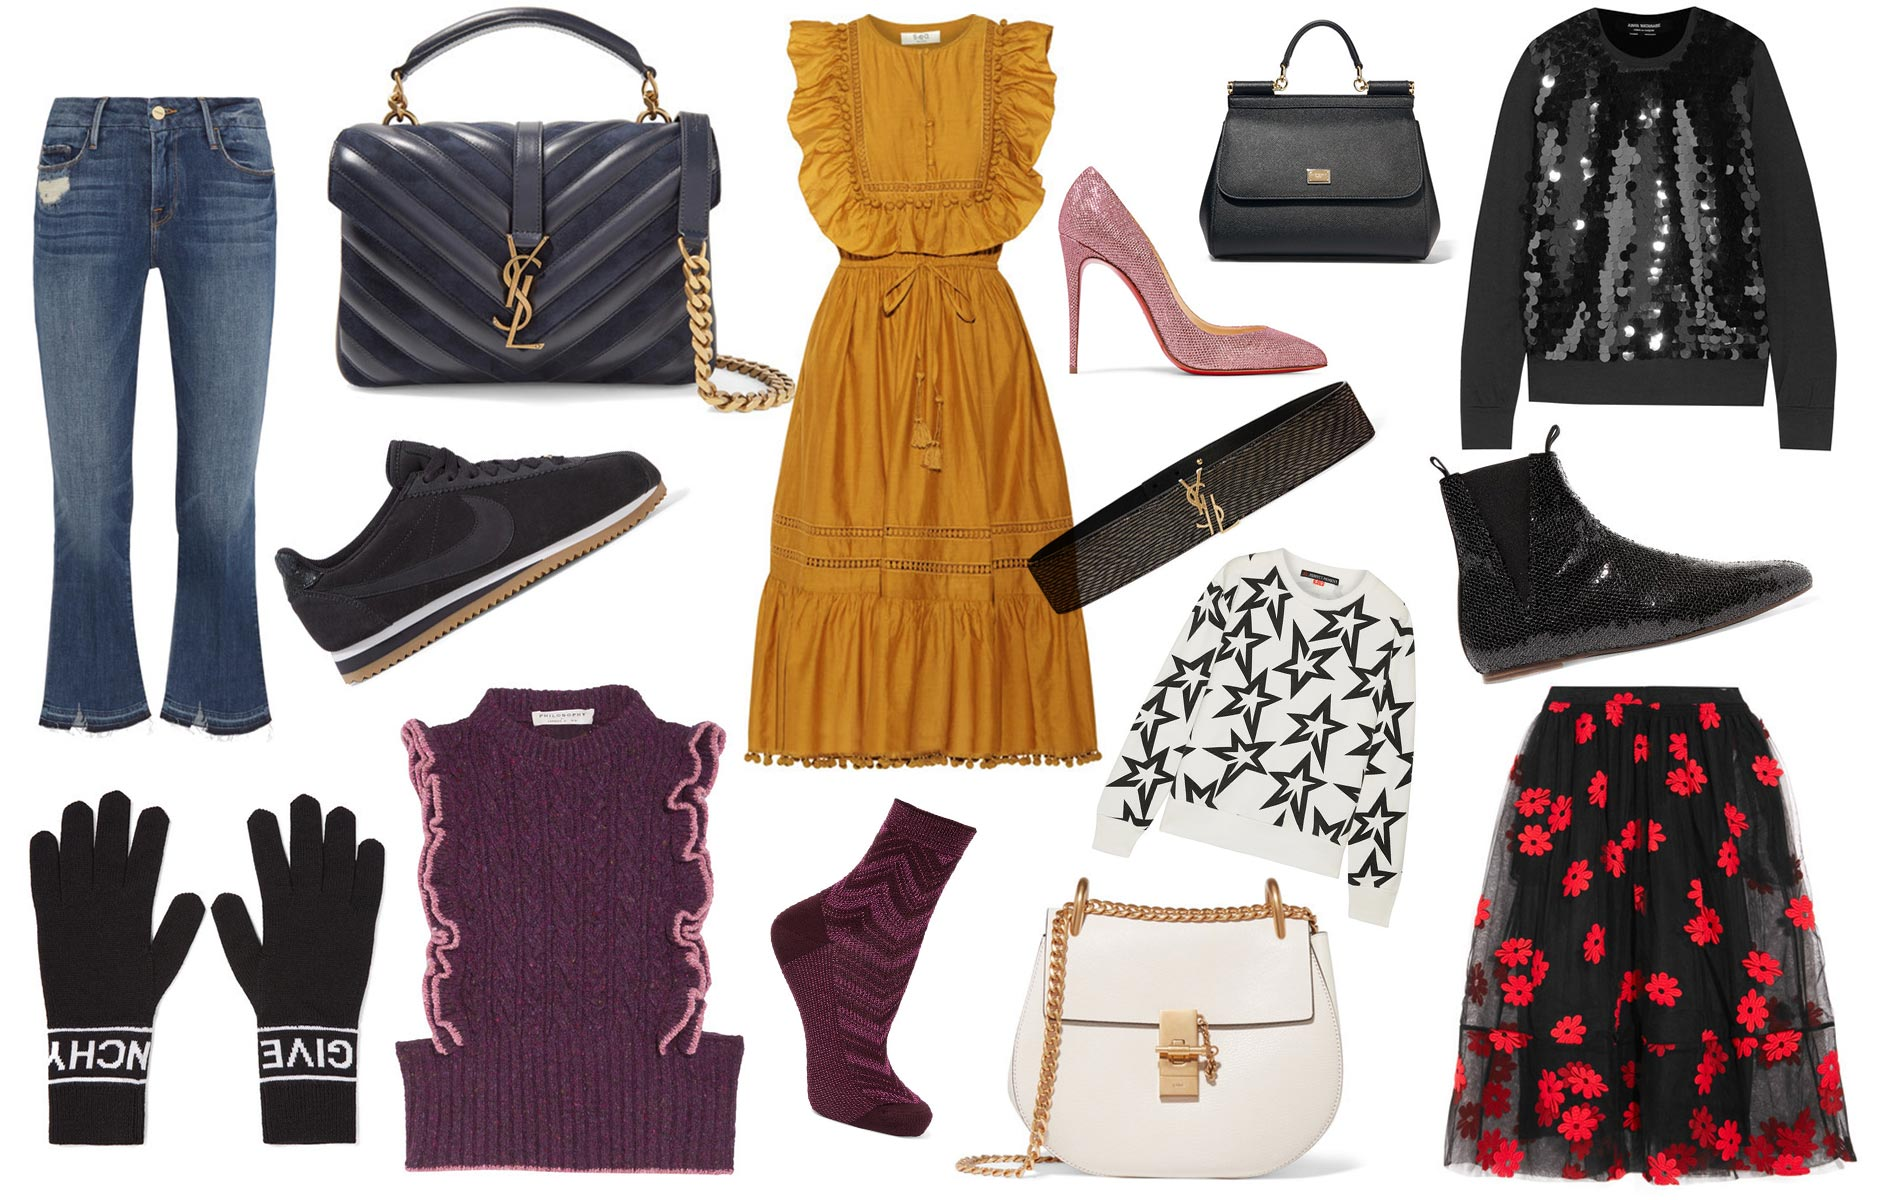 Anna Roufos Sosa of Noir Friday shares her picks from the Net-A-Porter private sale.